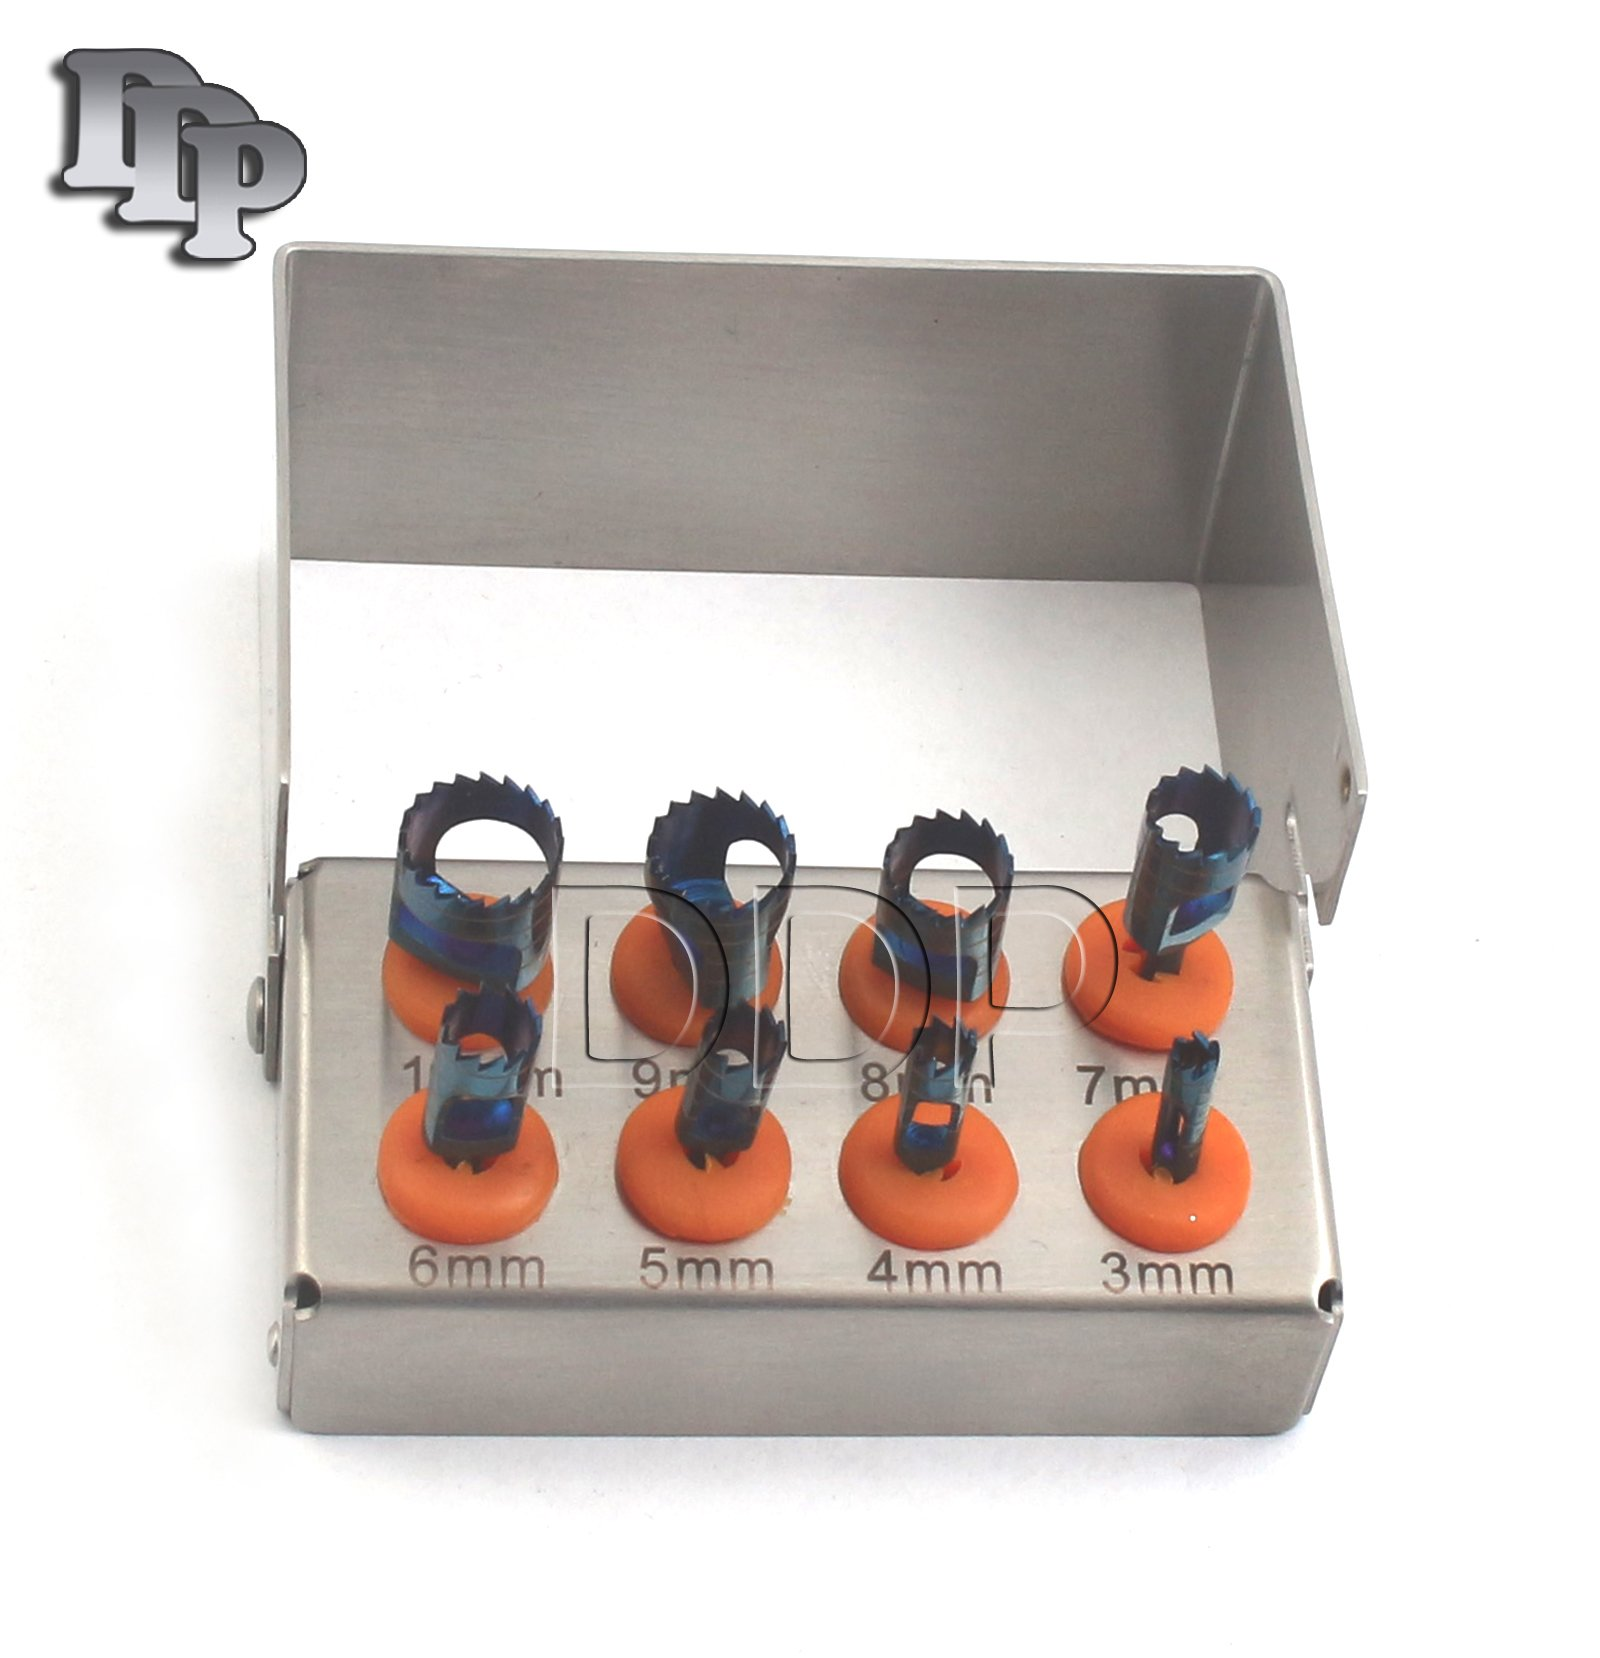 DDP 8 PCS DENTAL TREPHINE DRILLS KIT FOR IMPLANT WITH BUR HOLDER